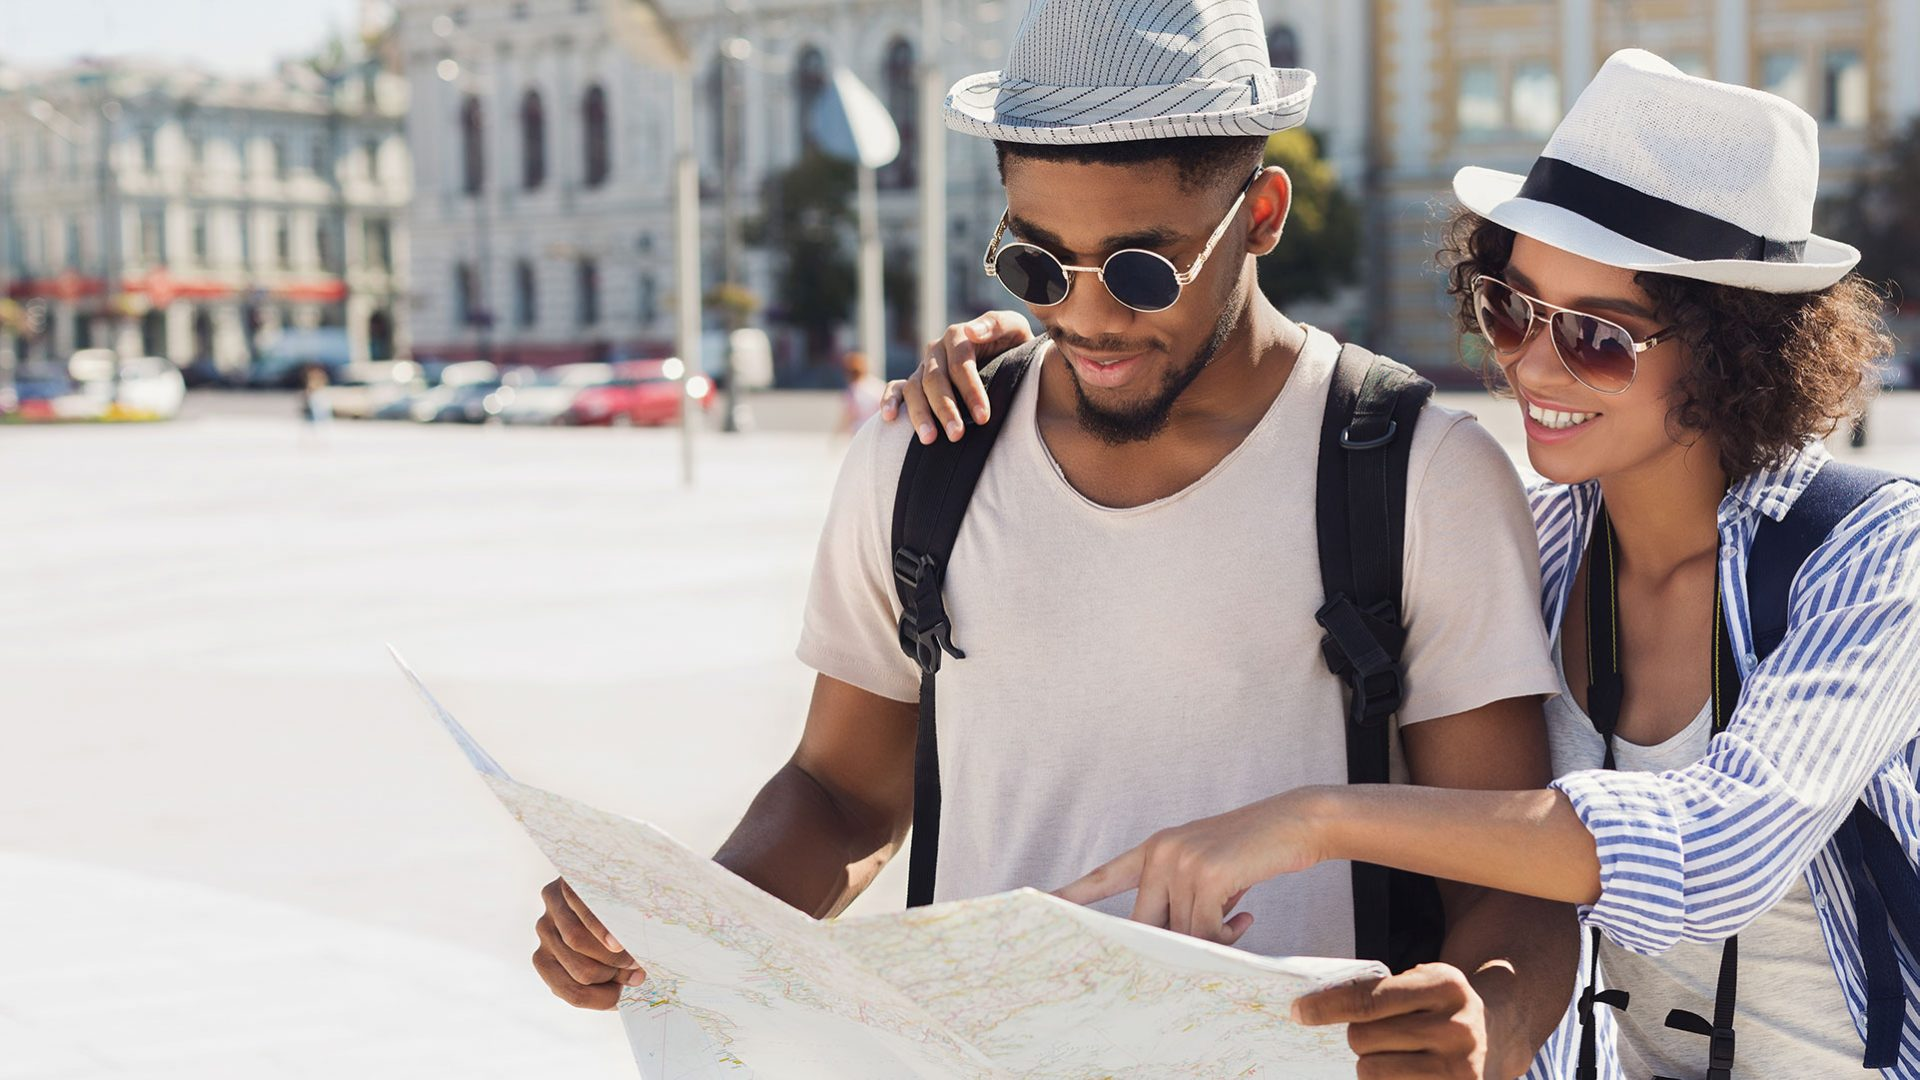 Couple with nice sunglasses looking at a map in a city